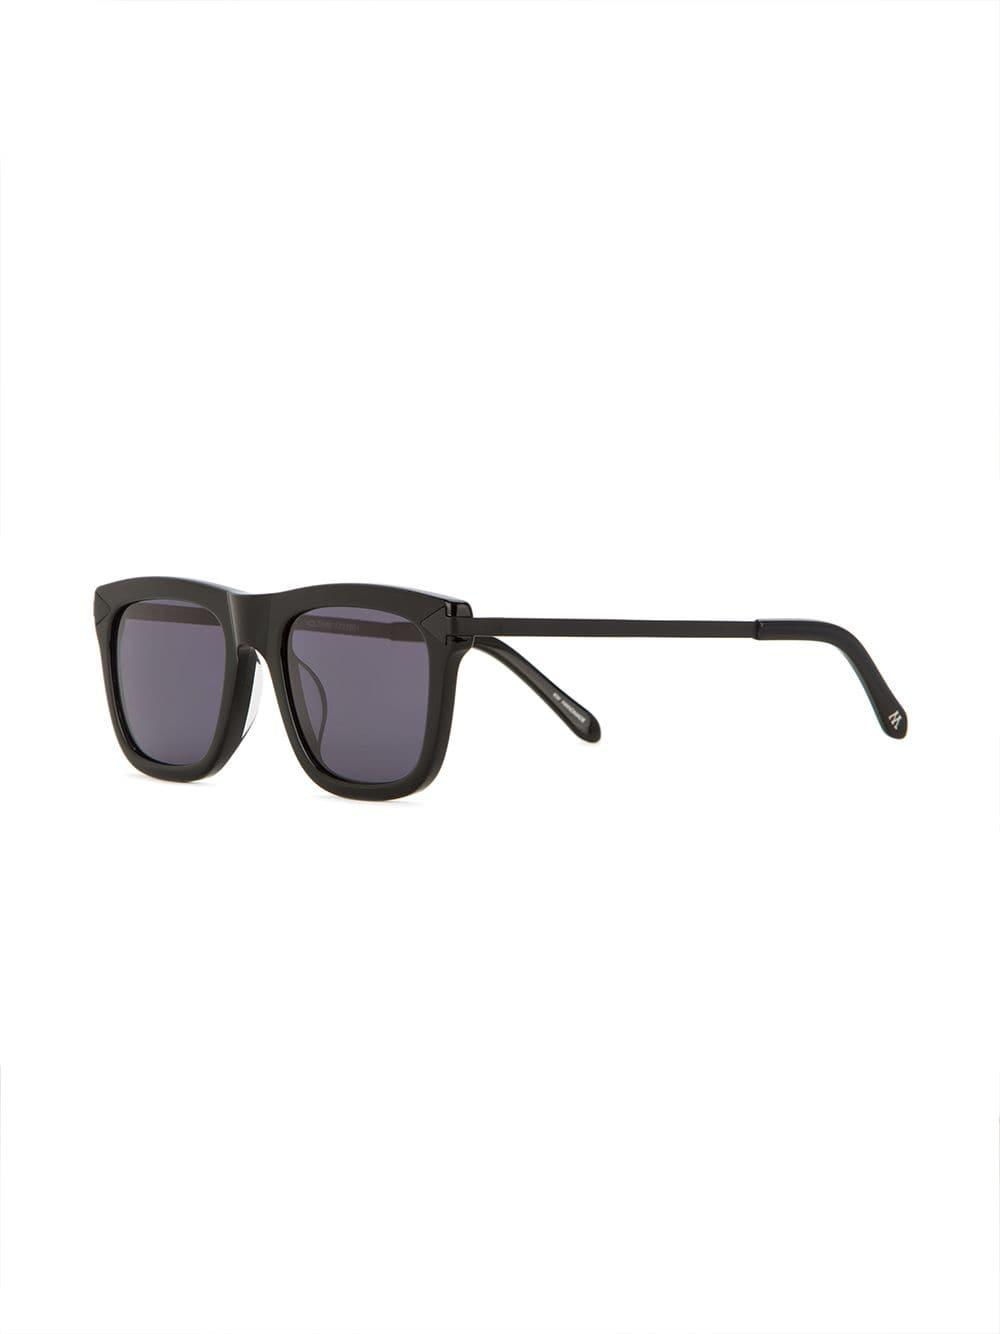 Karen Walker Voltaire Sunglasses in Black